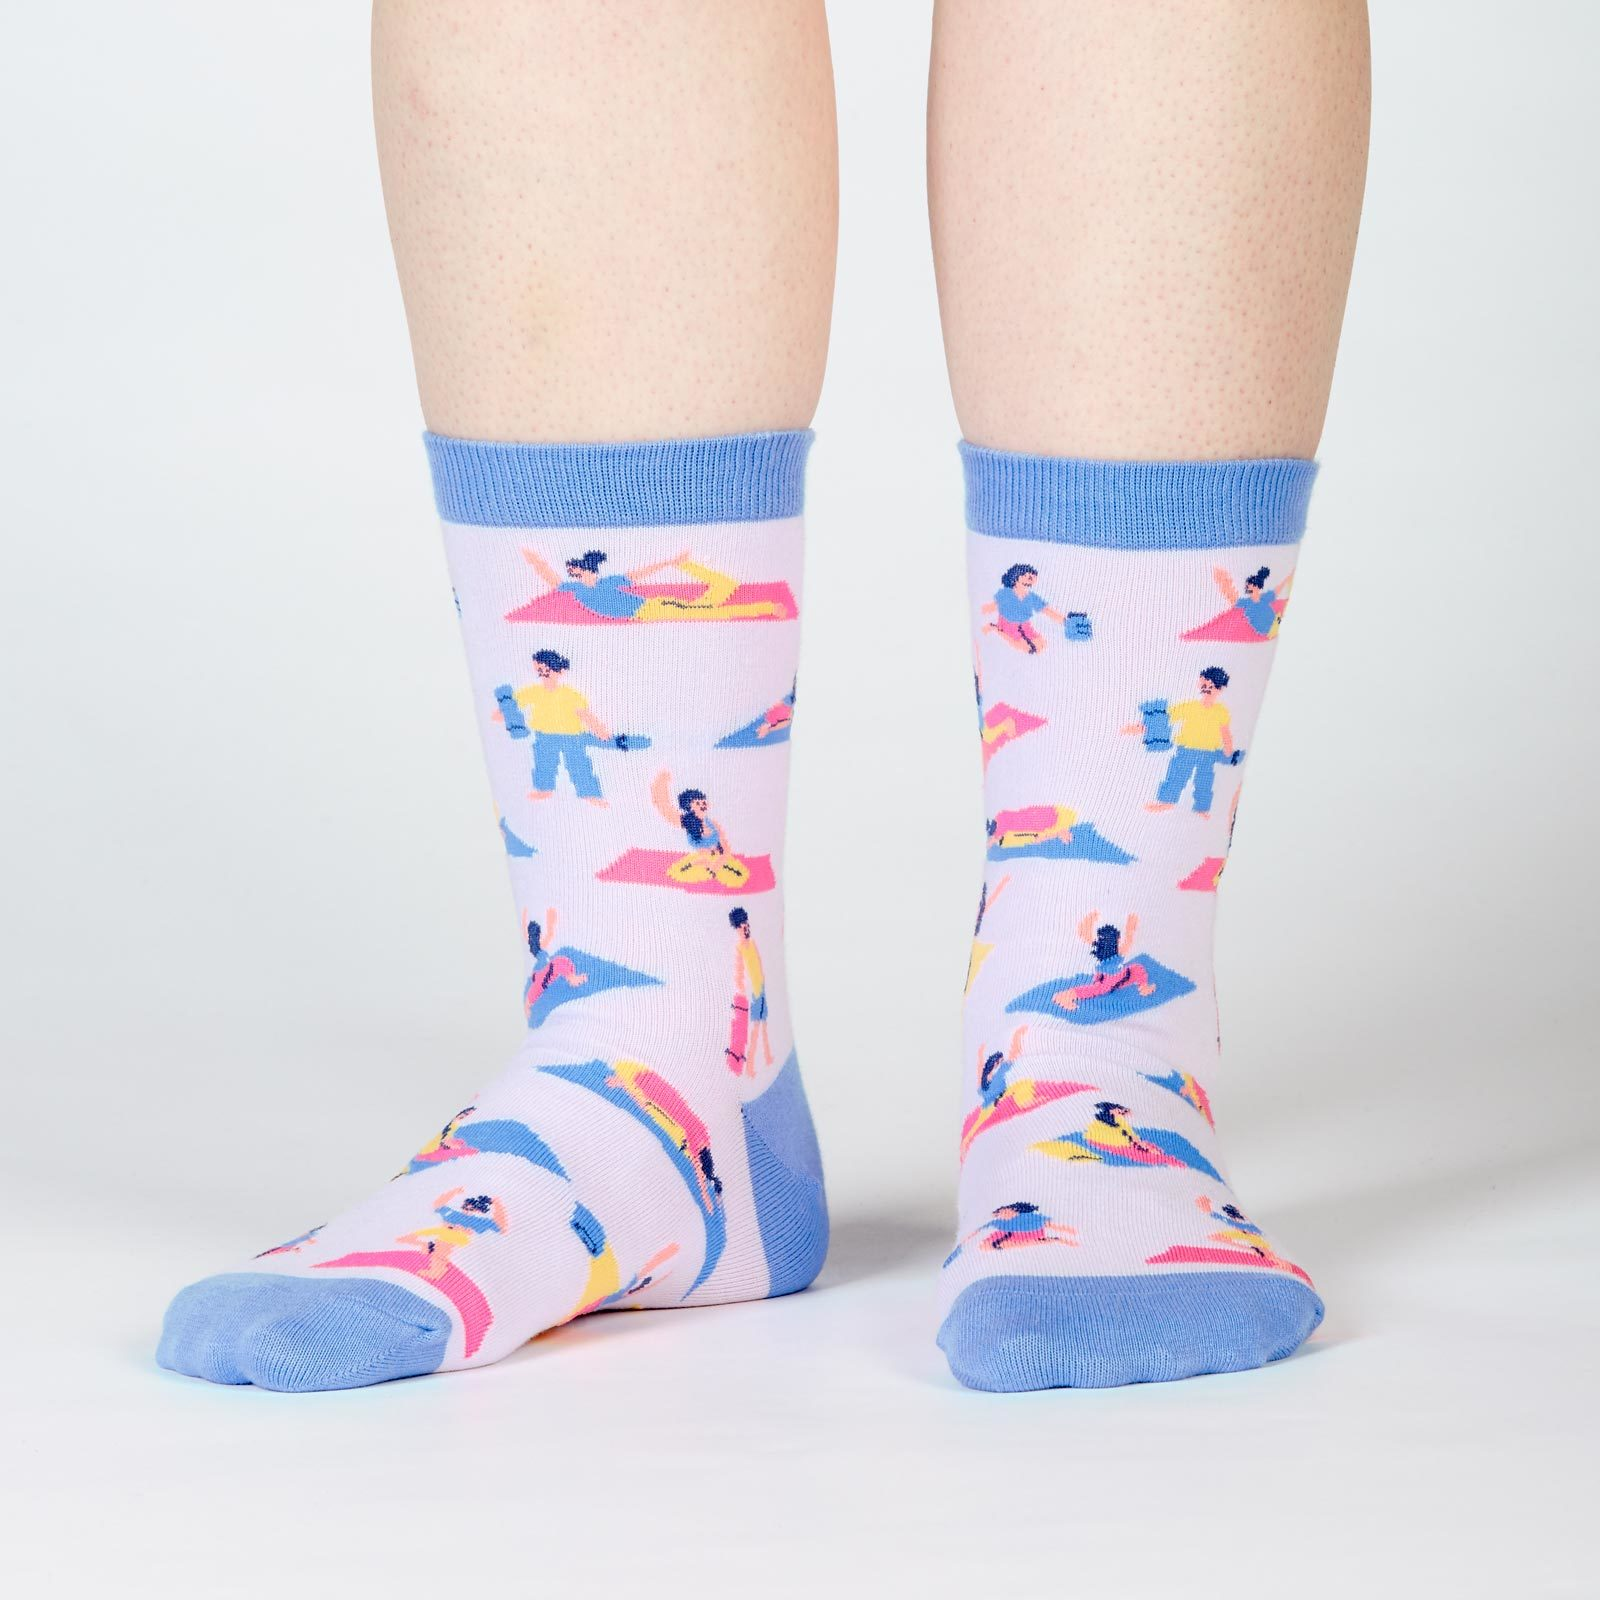 Women's - Pose Your Toes Crew Socks image